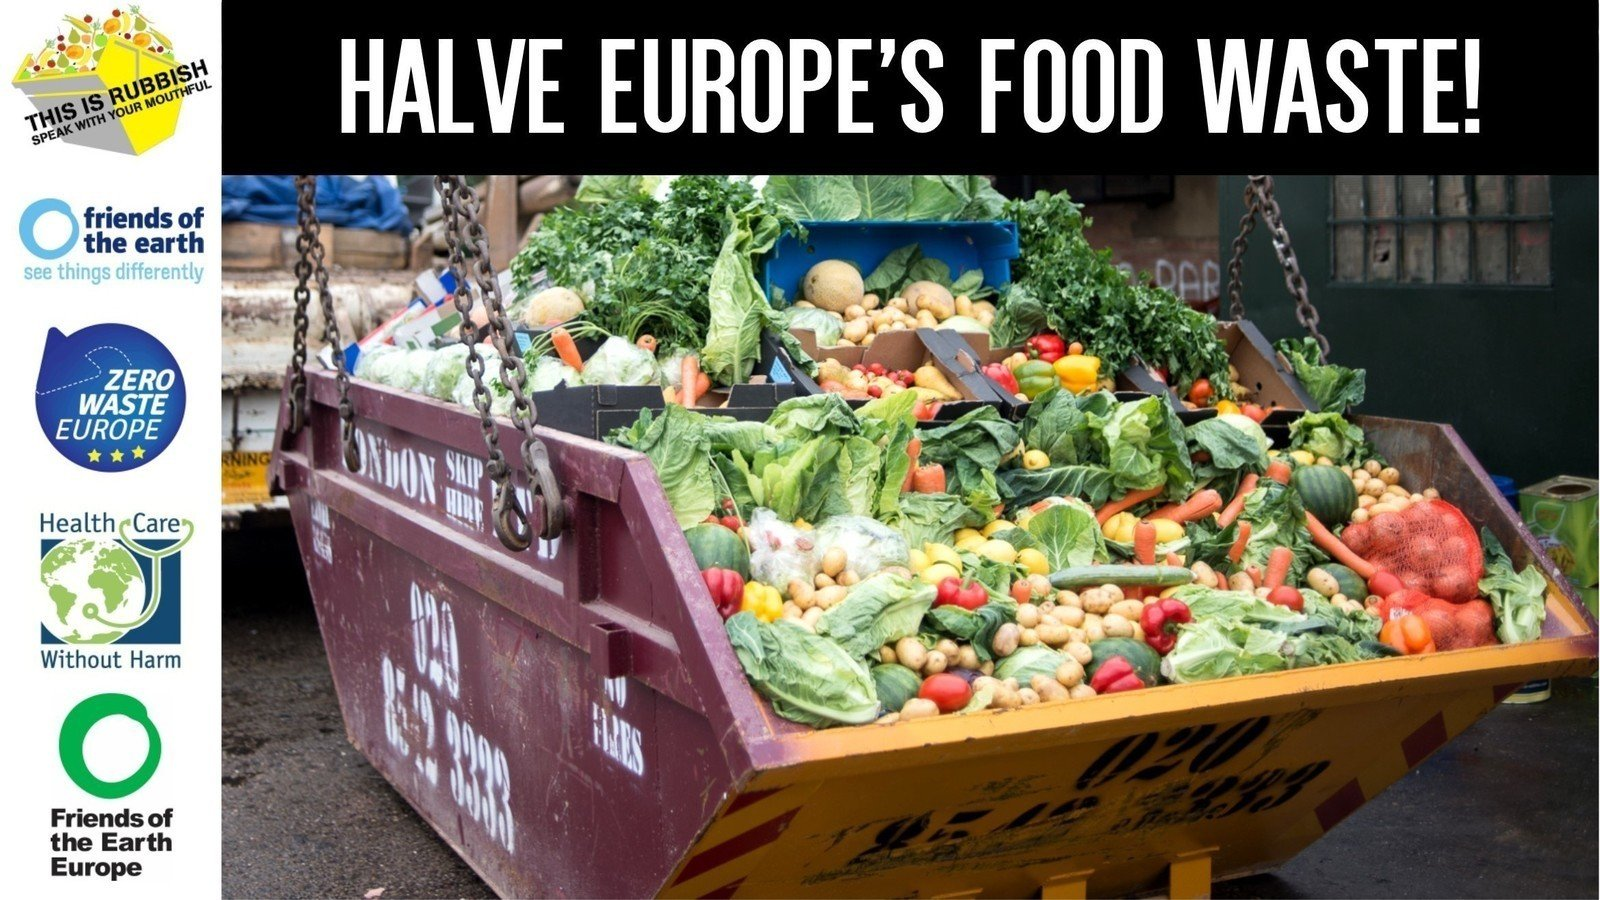 Petition · Let's cut Europe and the UK's food waste in half